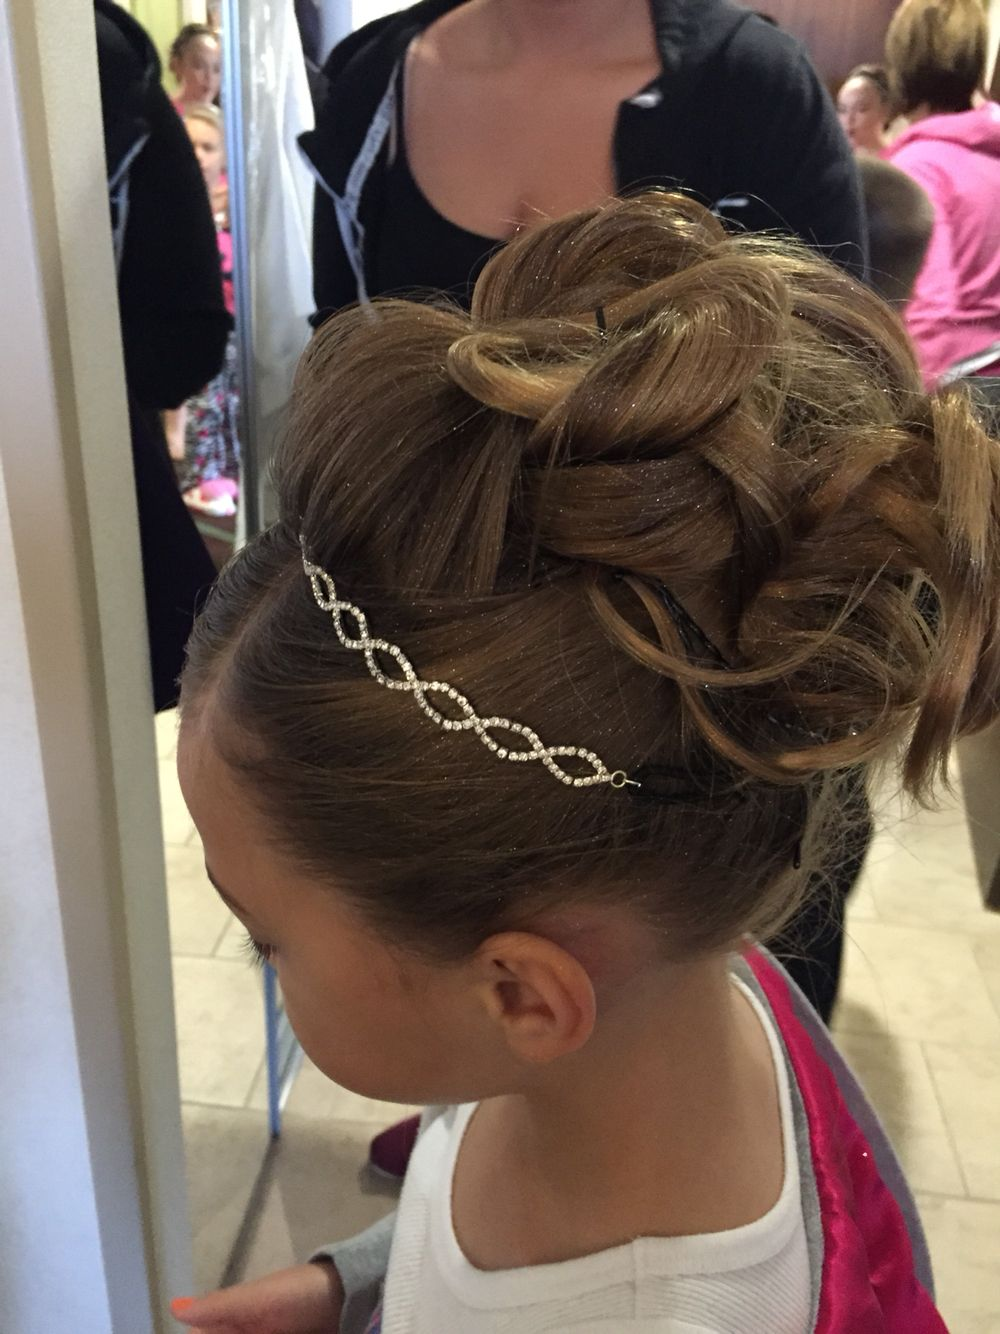 Childs Updo | Hair Iu0026#39;ve Perfected! | Pinterest | Updo Communion And Girl Hair